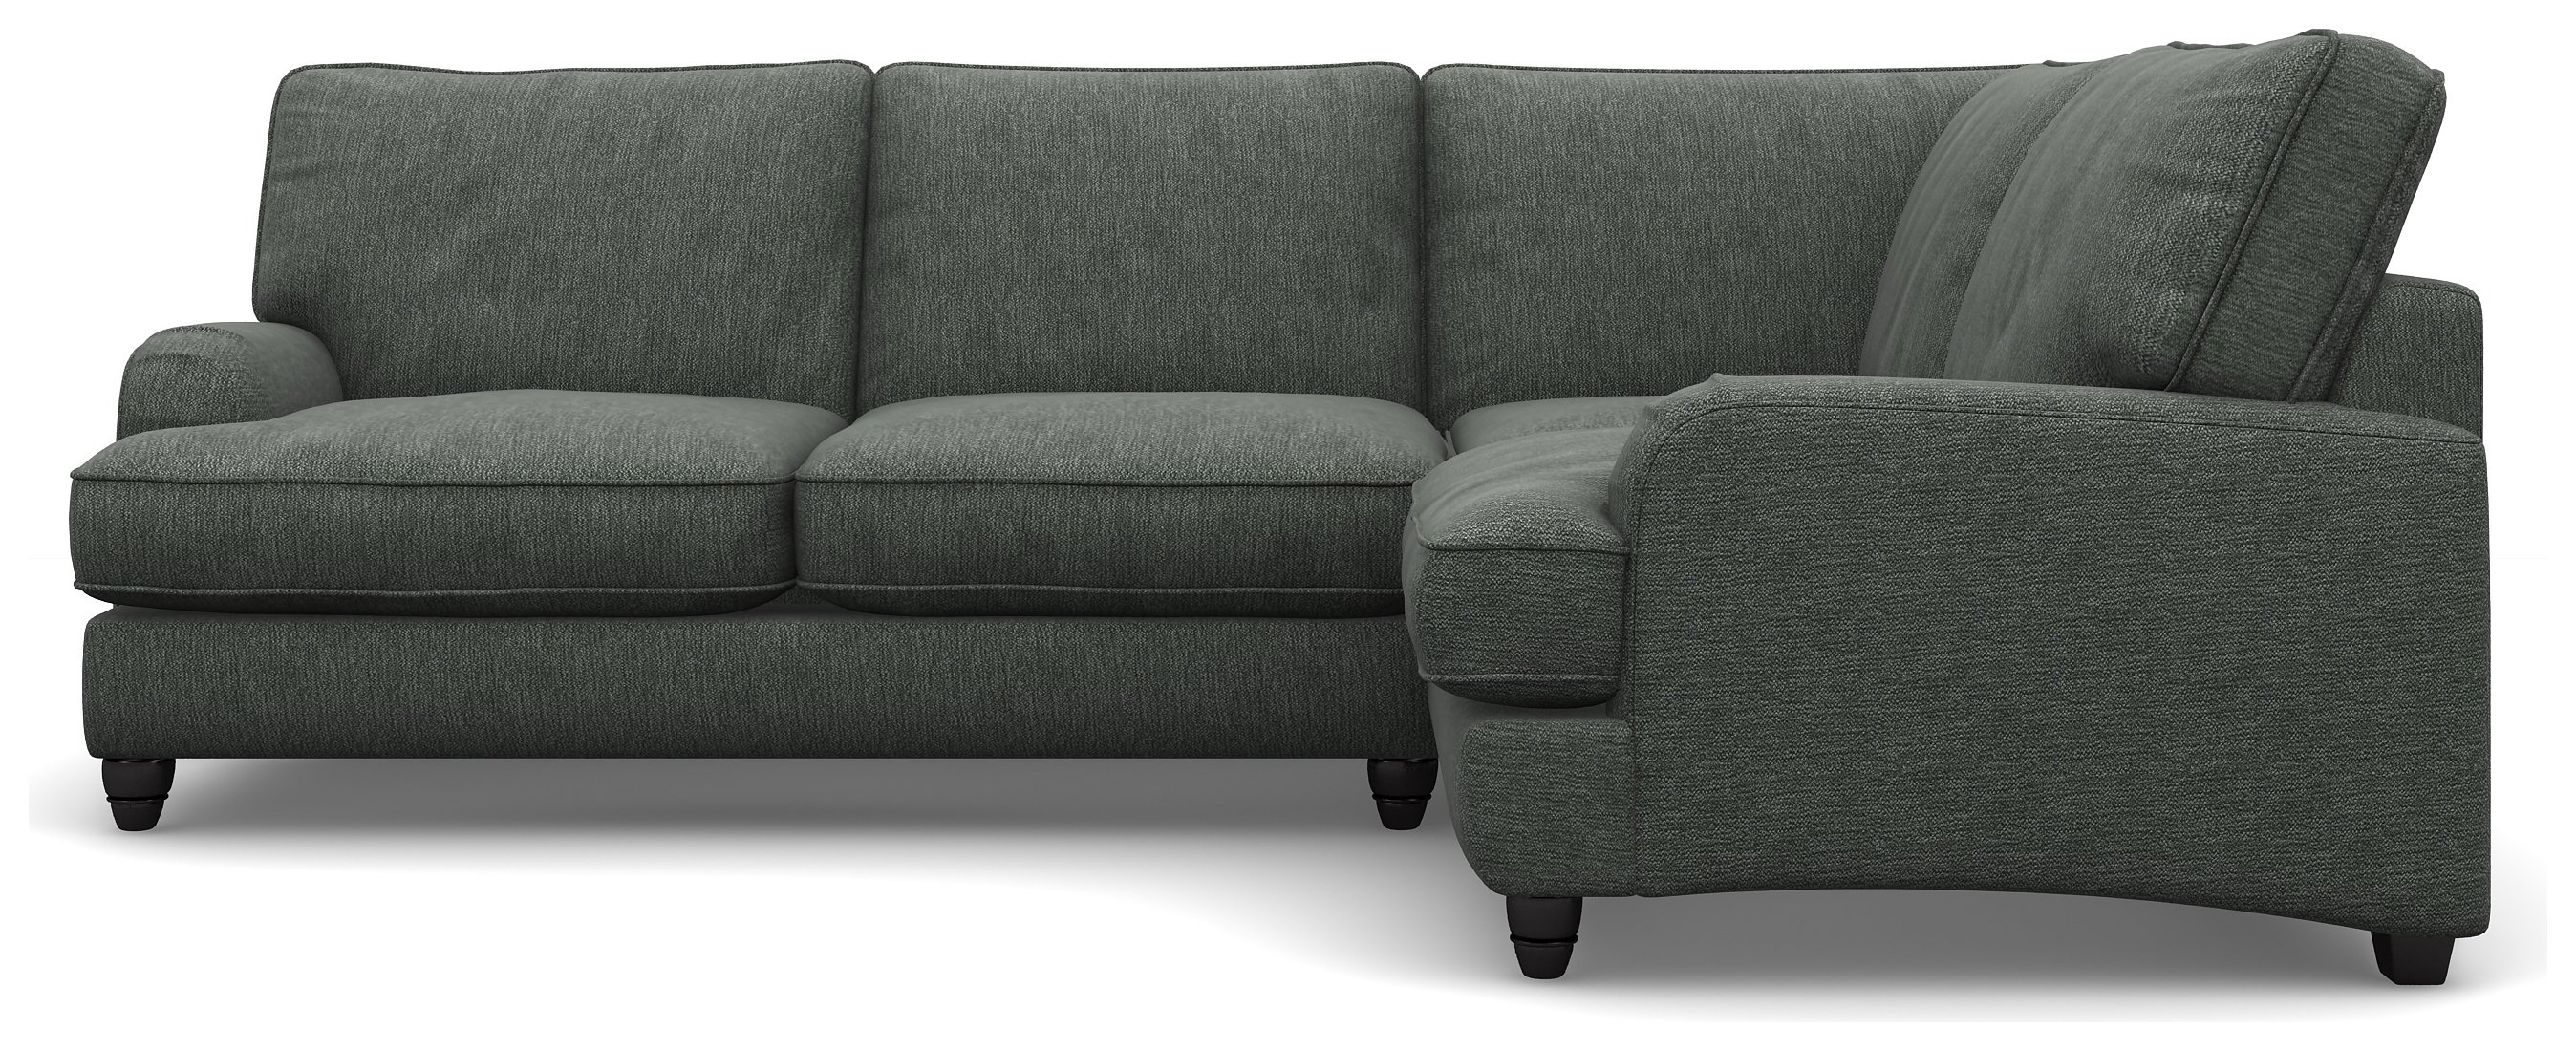 Heart of House Adeline Fabric Right Corner Sofa - Pewter.